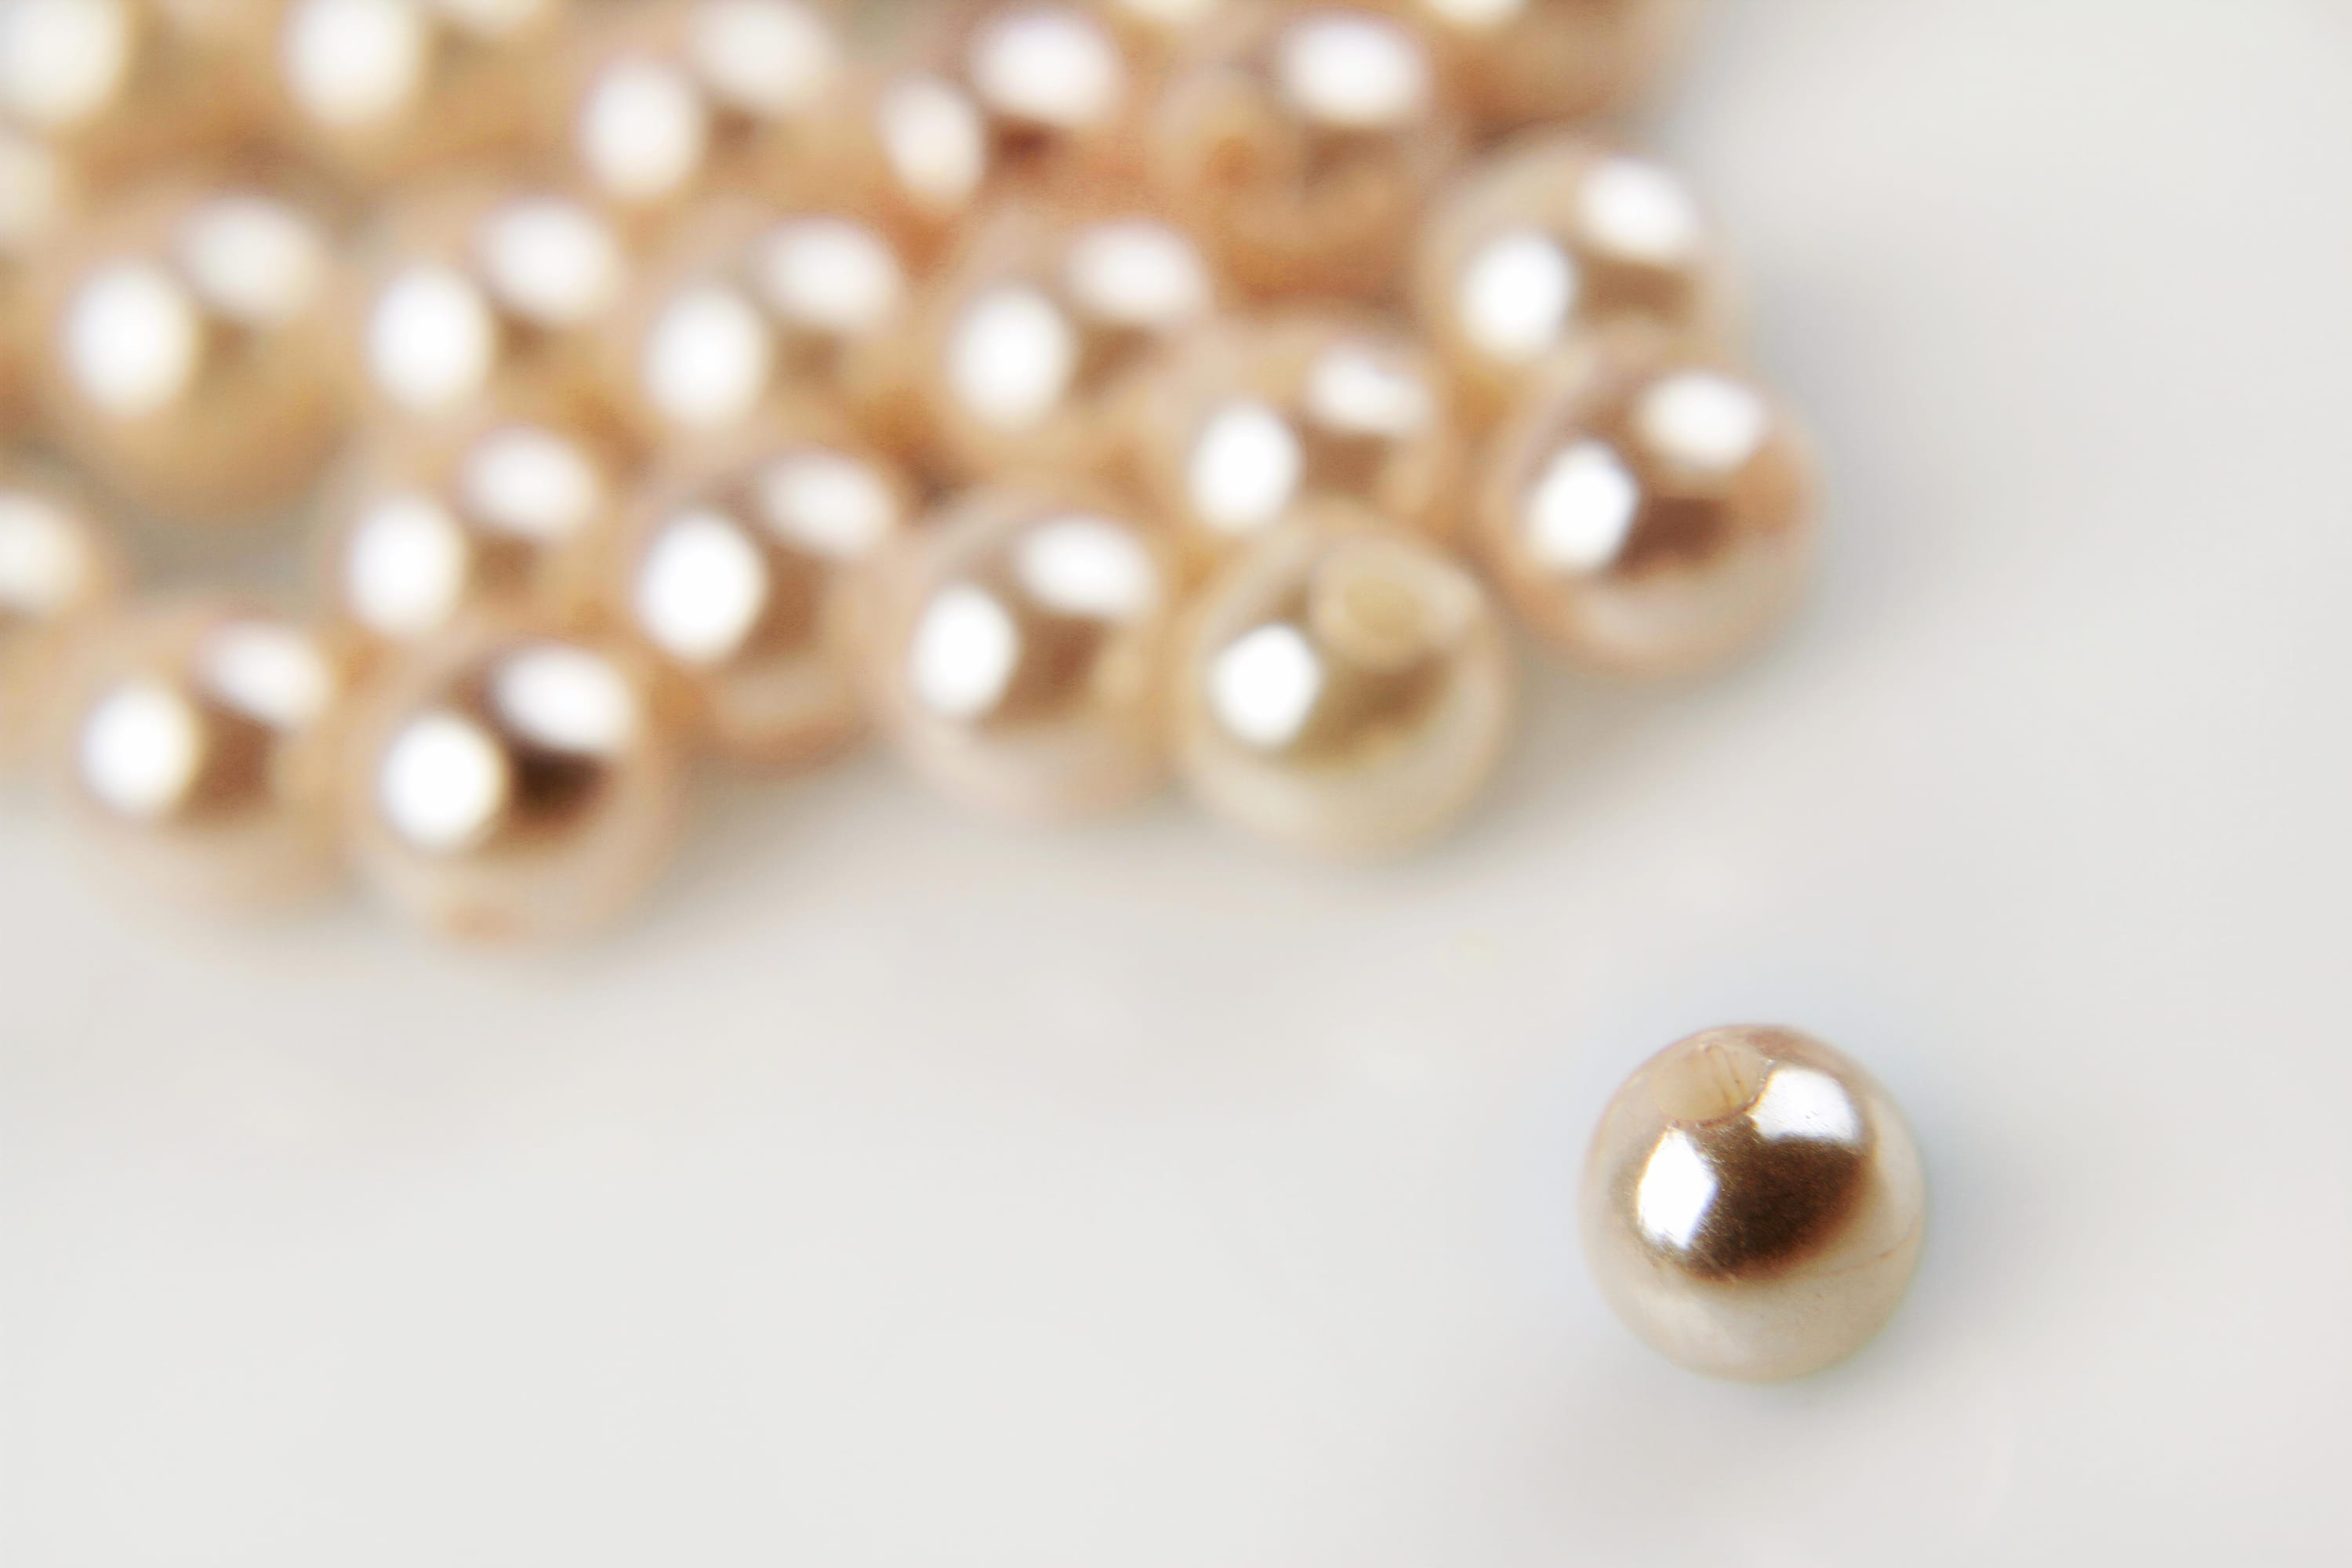 Lots of rose-colored shiny pearls